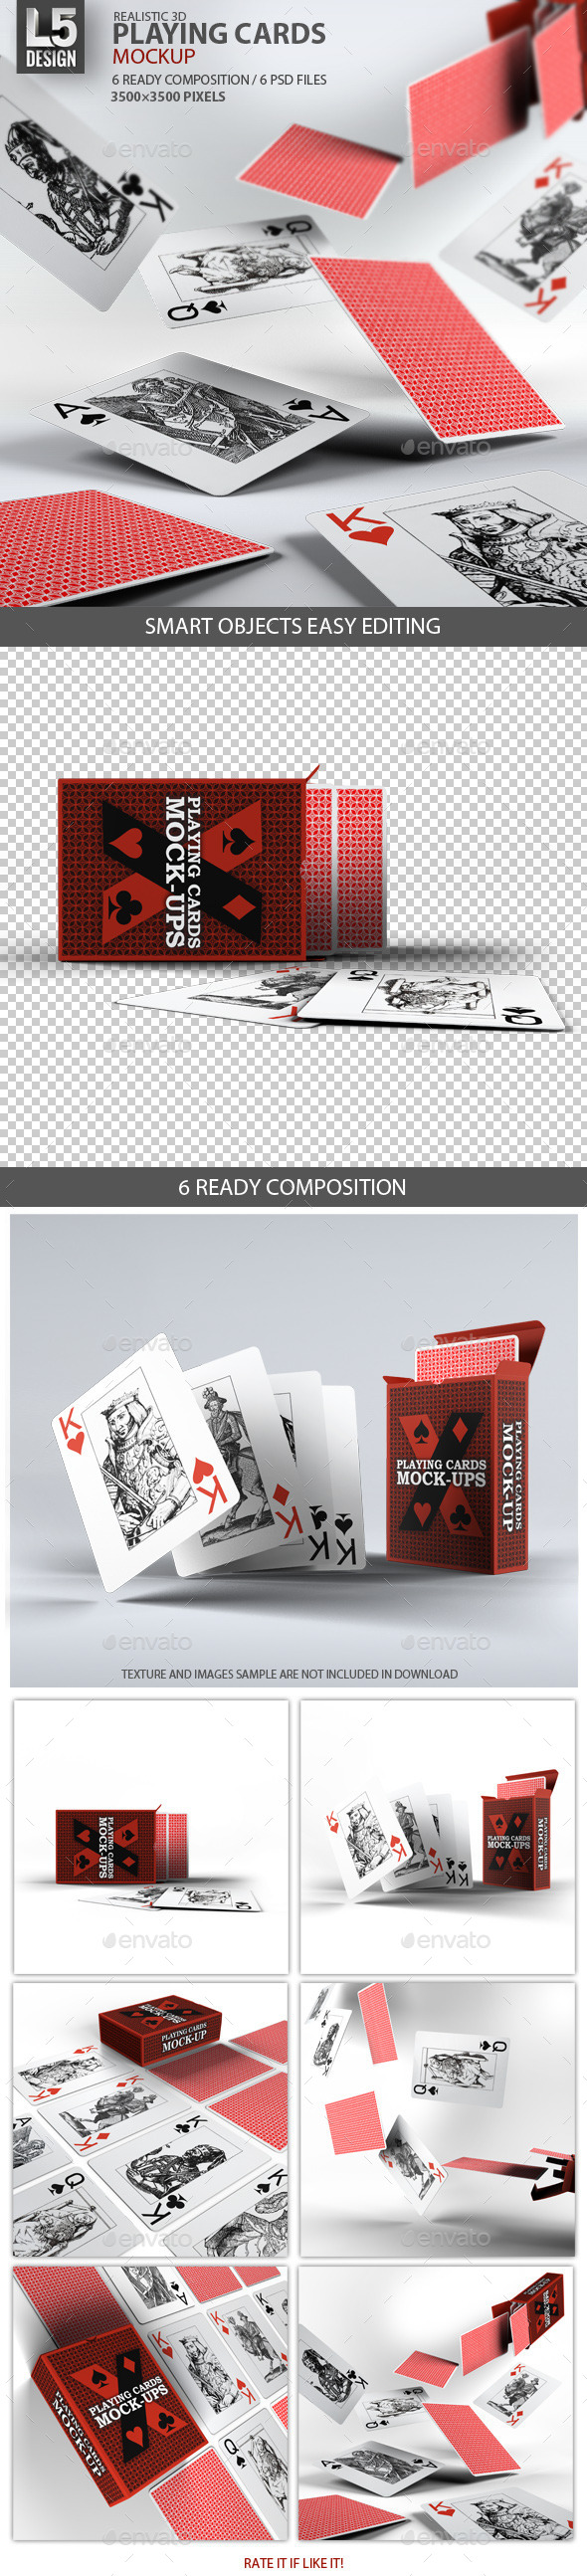 GraphicRiver Playing Cards Card Box Mock-Up 9250742